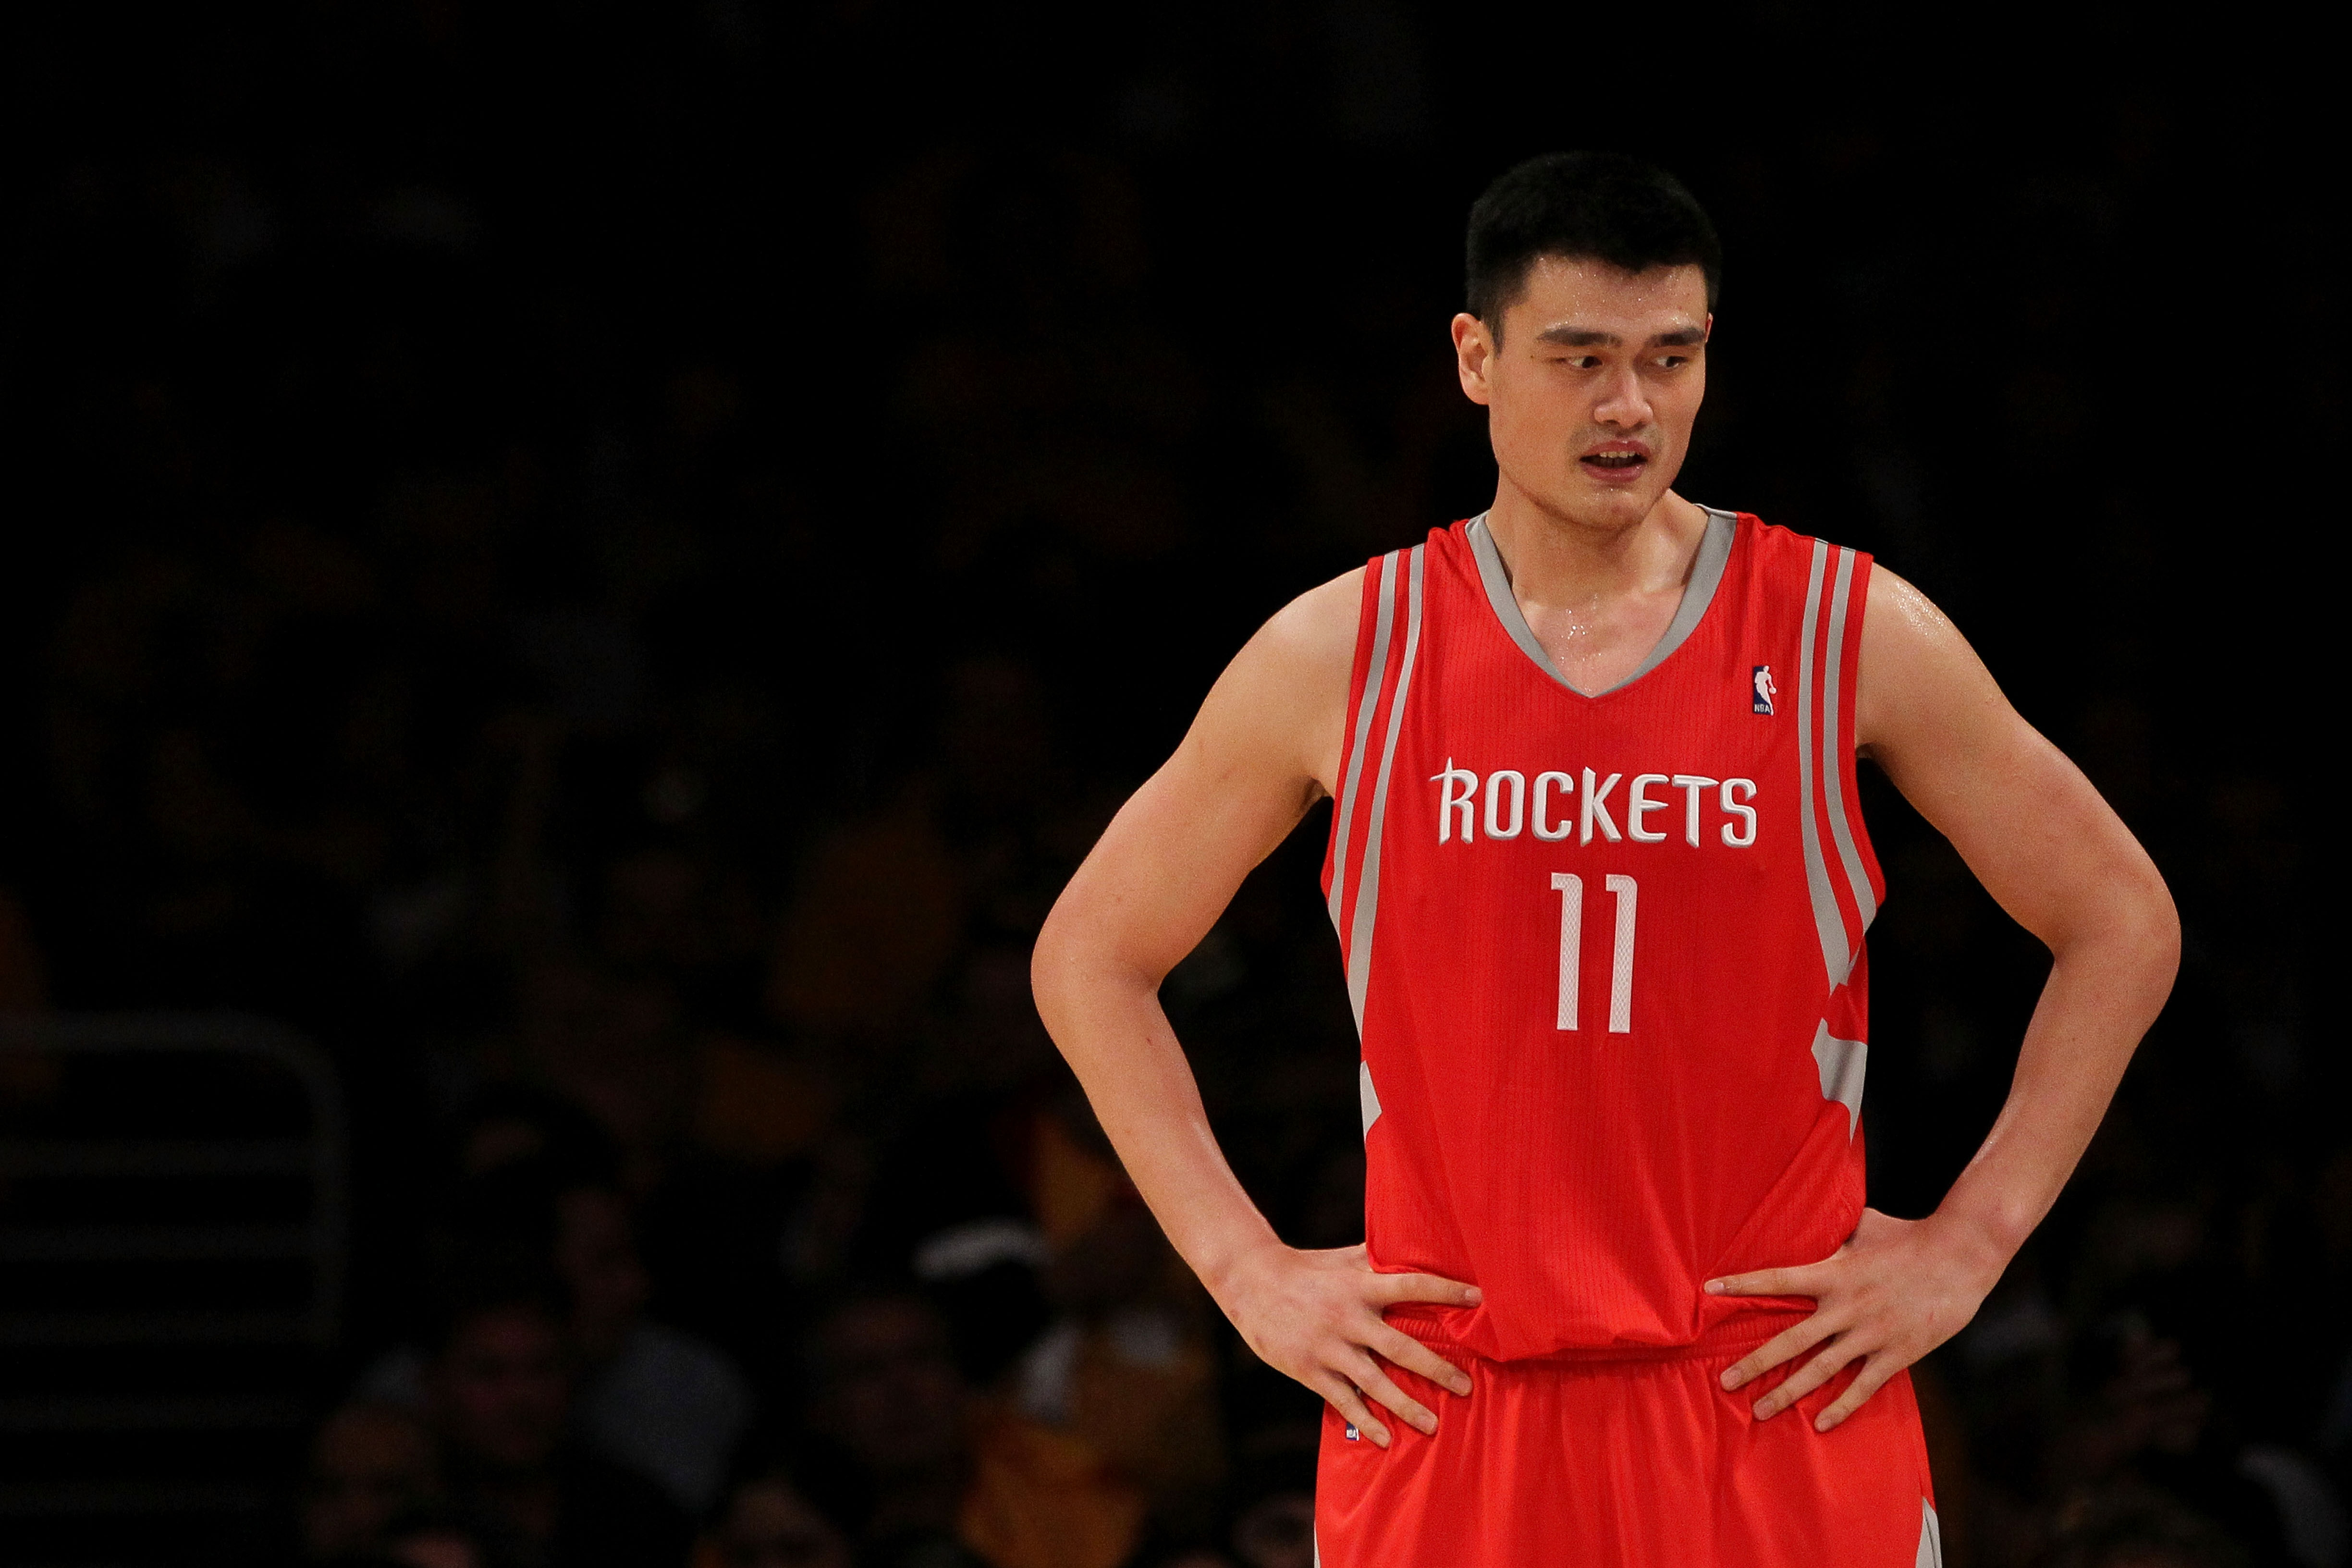 LOS ANGELES, CA - OCTOBER 26:  Yao Ming #11 of the Houston Rockets looks on during their opening night game against the Los Angeles Lakers at Staples Center on October 26, 2010 in Los Angeles, California. NOTE TO USER: User expressly acknowledges and agre